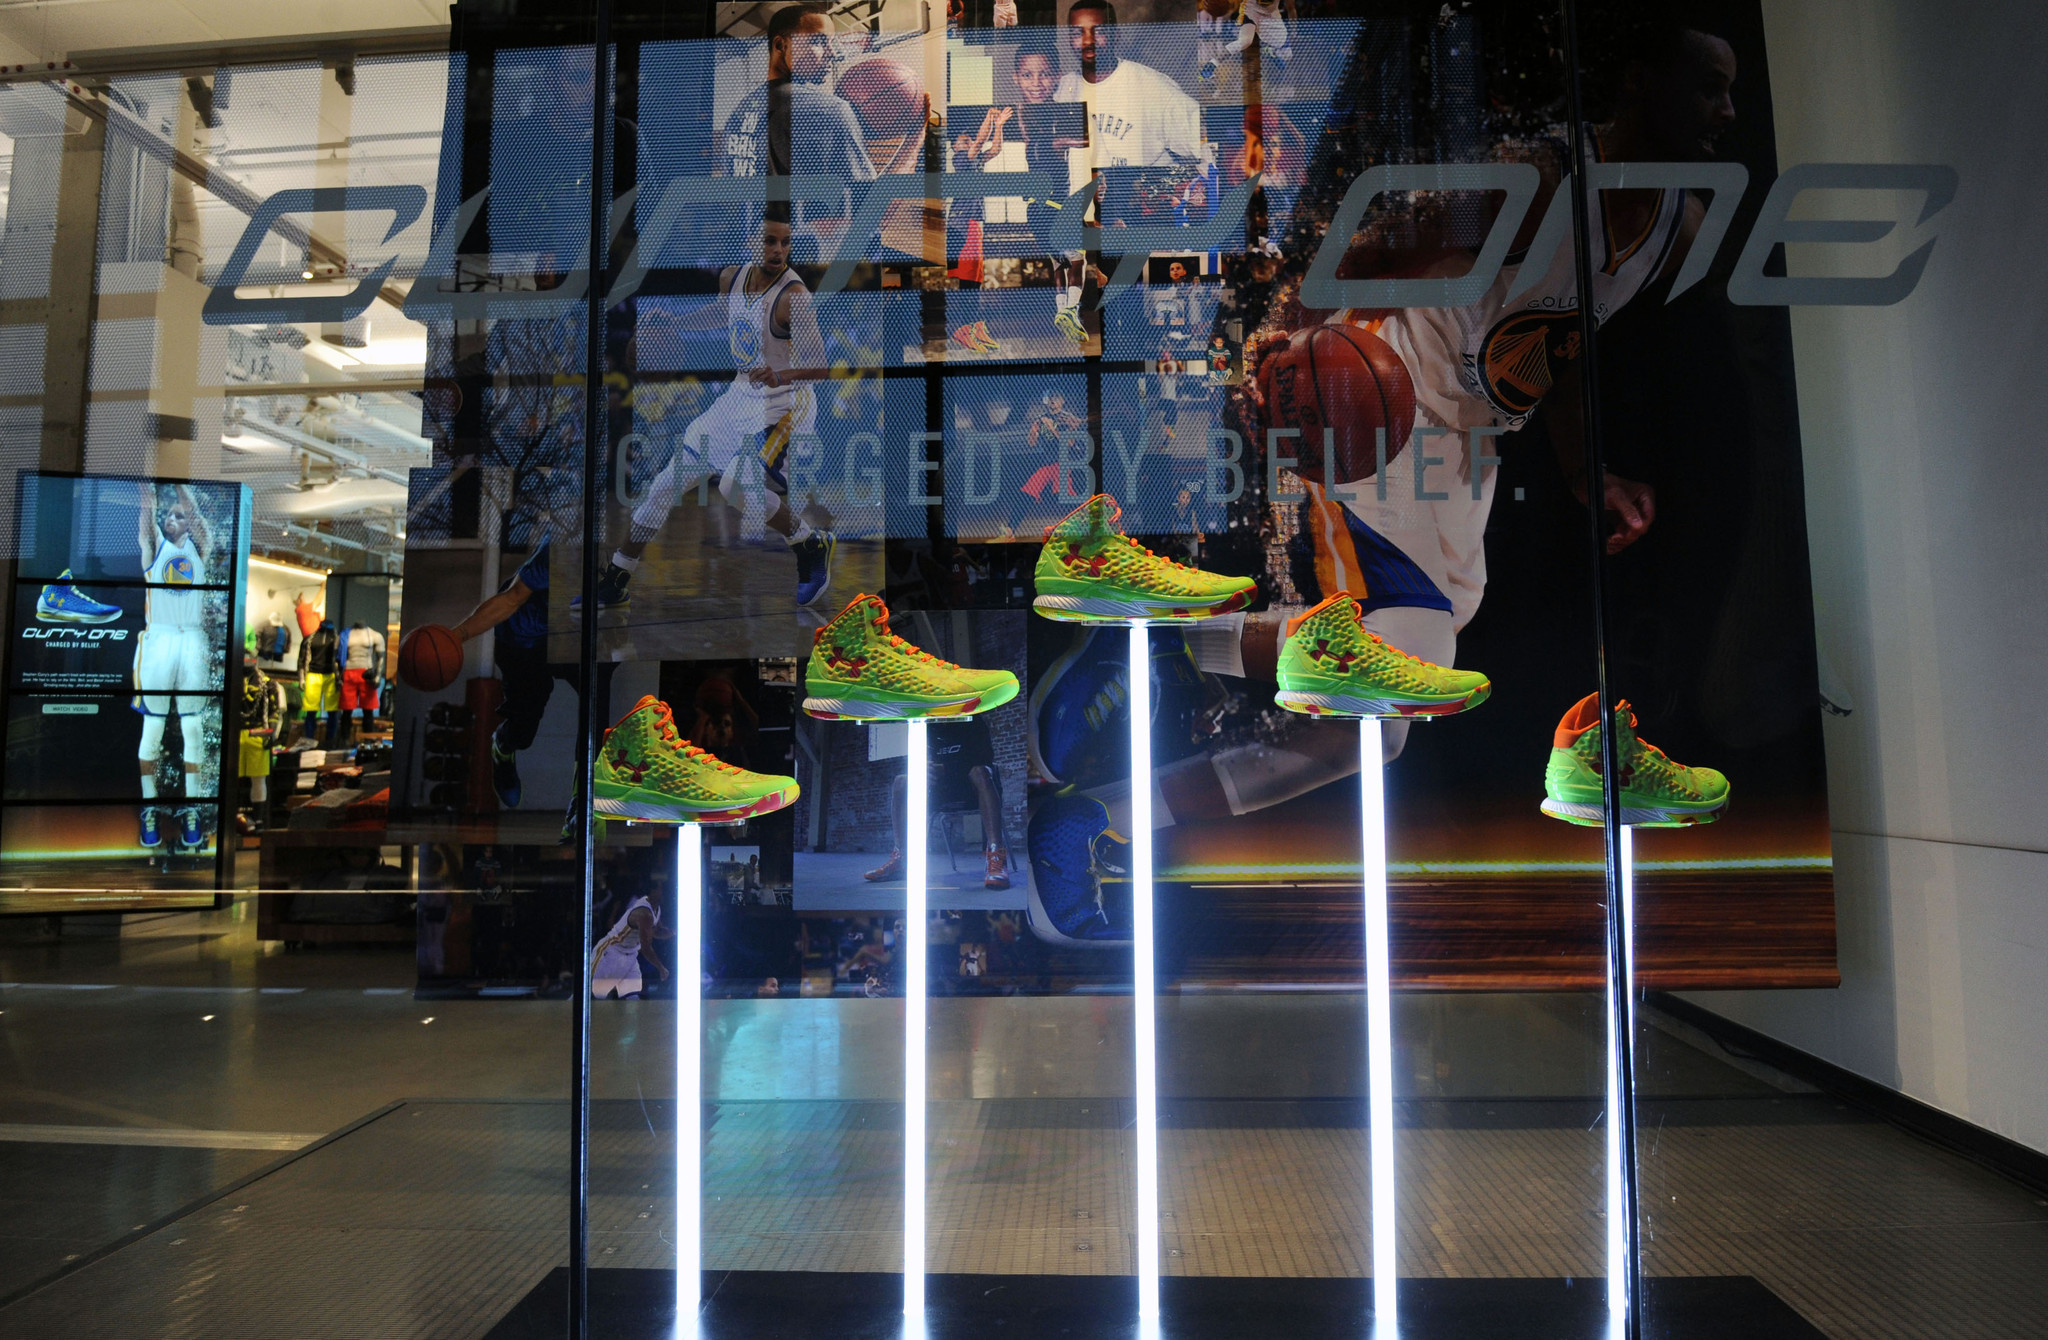 Under Armour wants to open Brand House store in Boston